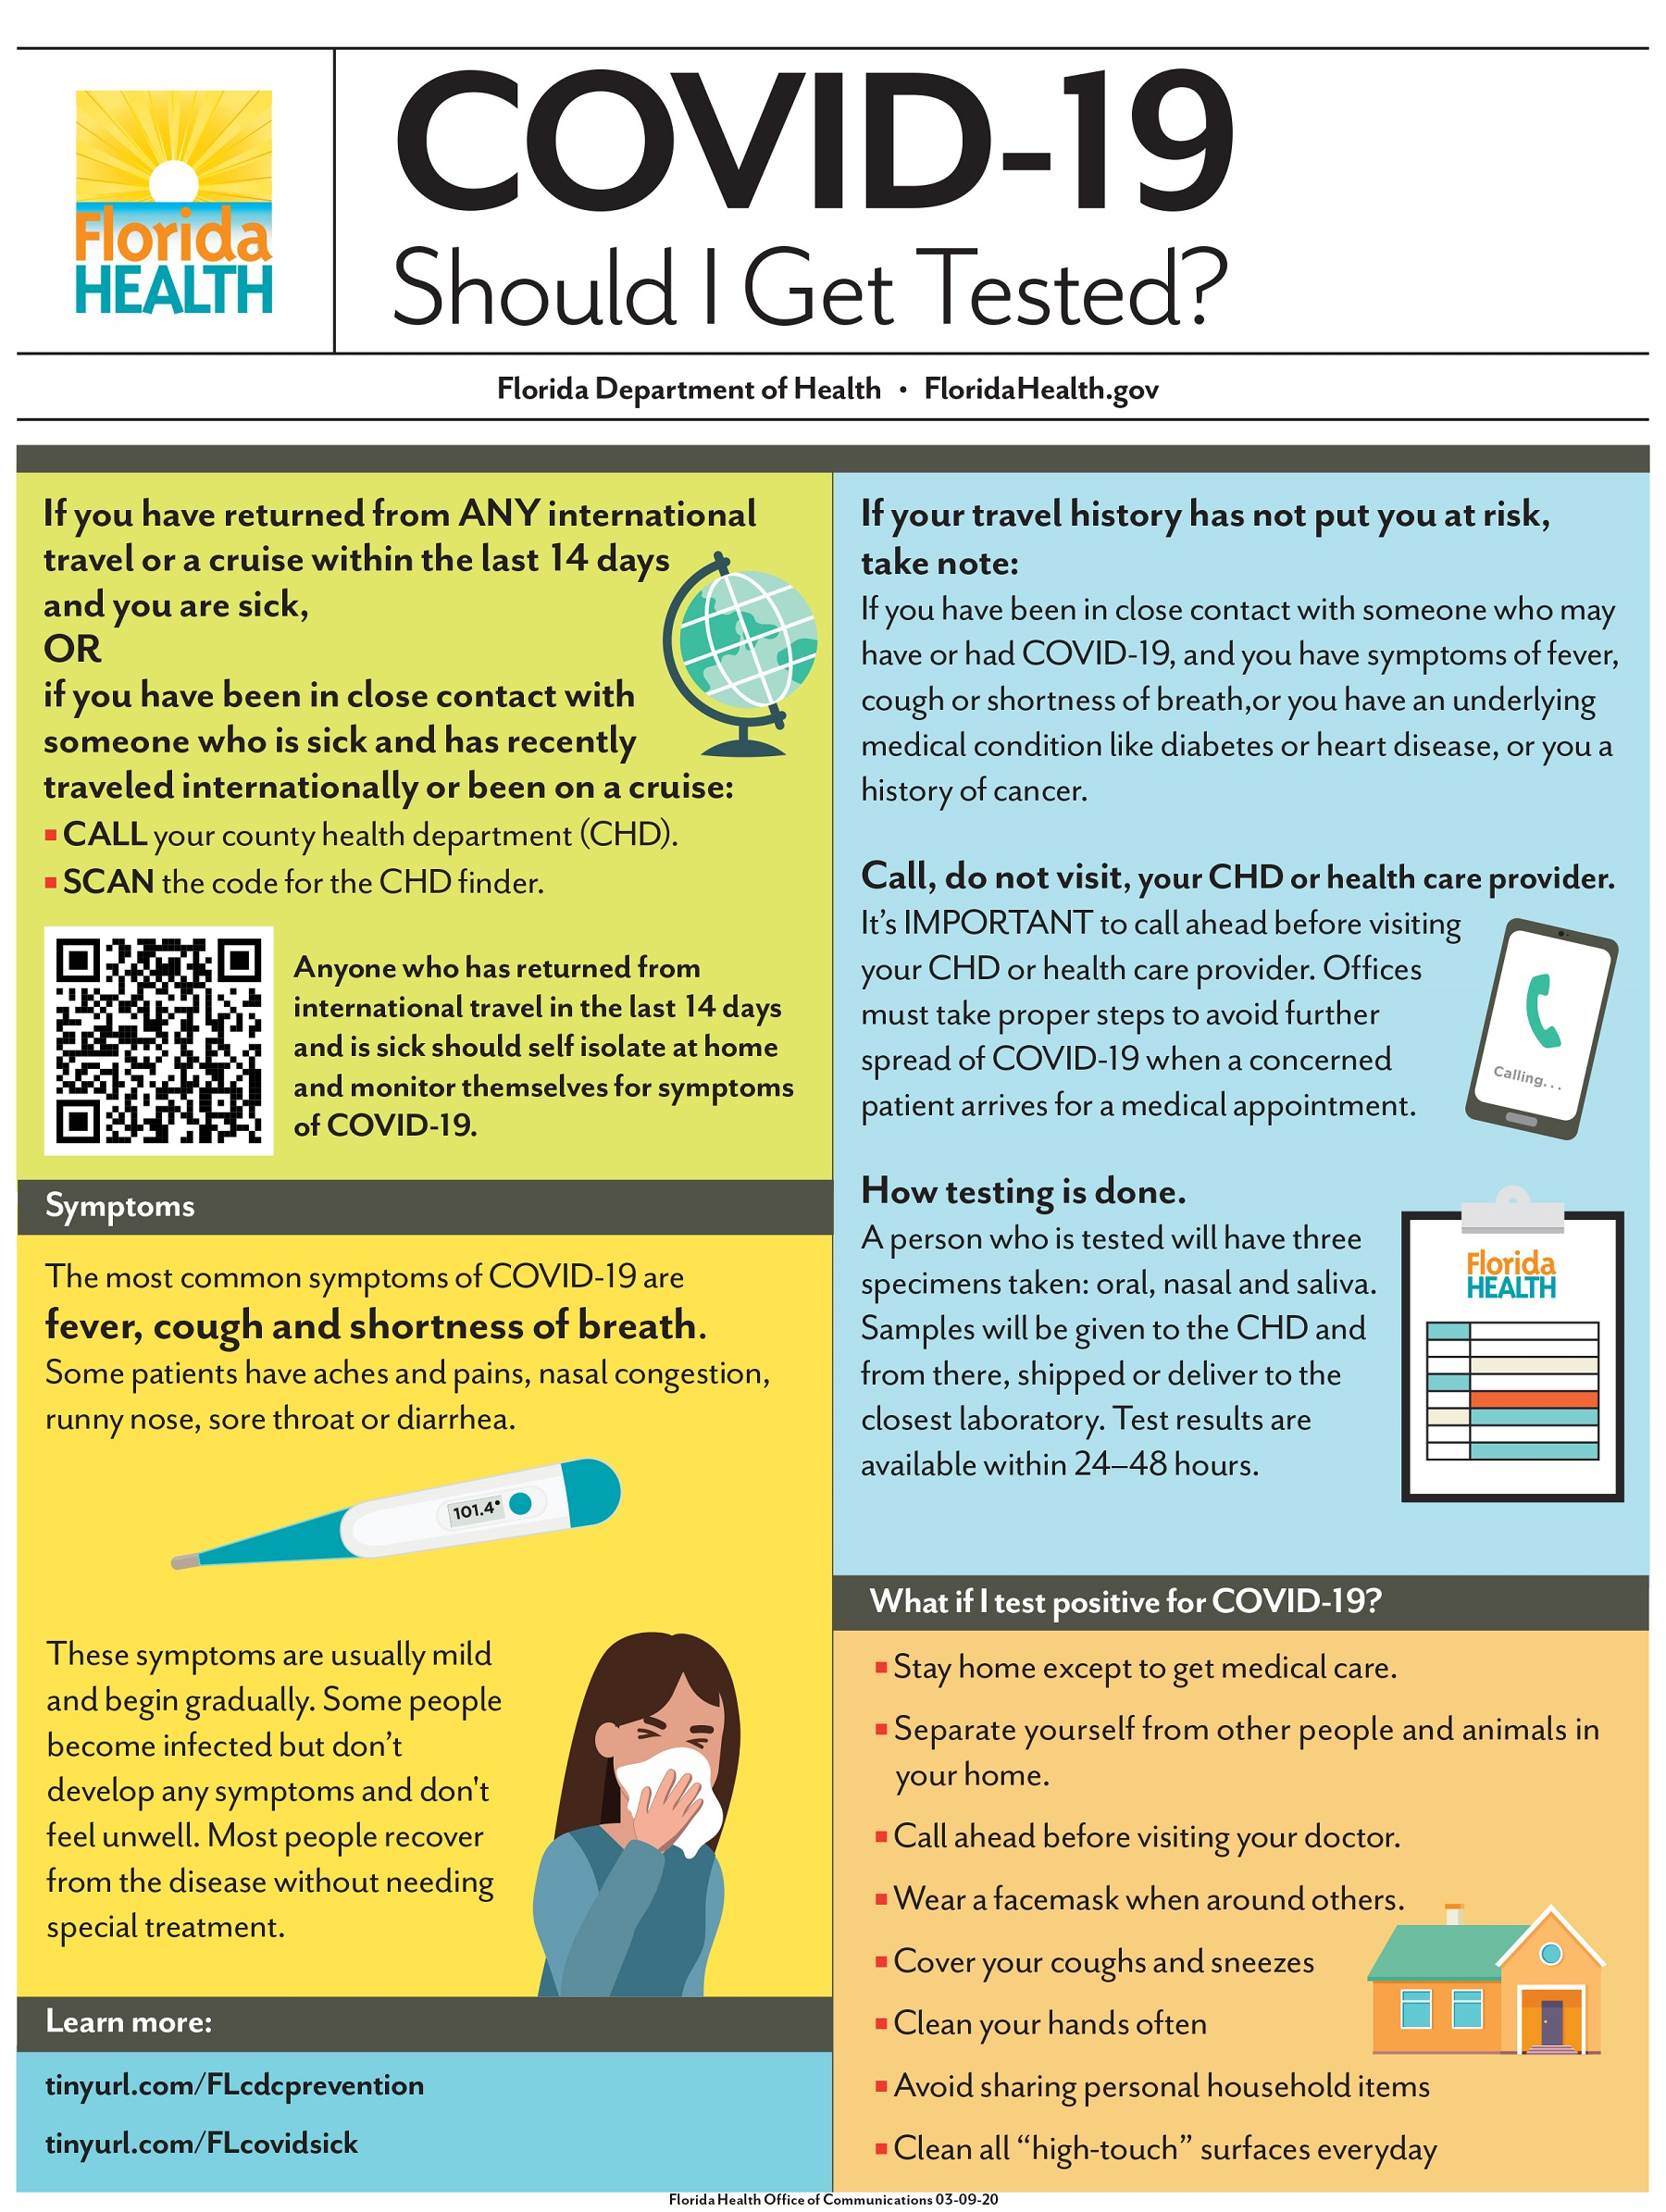 COVID-19: What Health Officials Say About Getting Tested (Infographic)